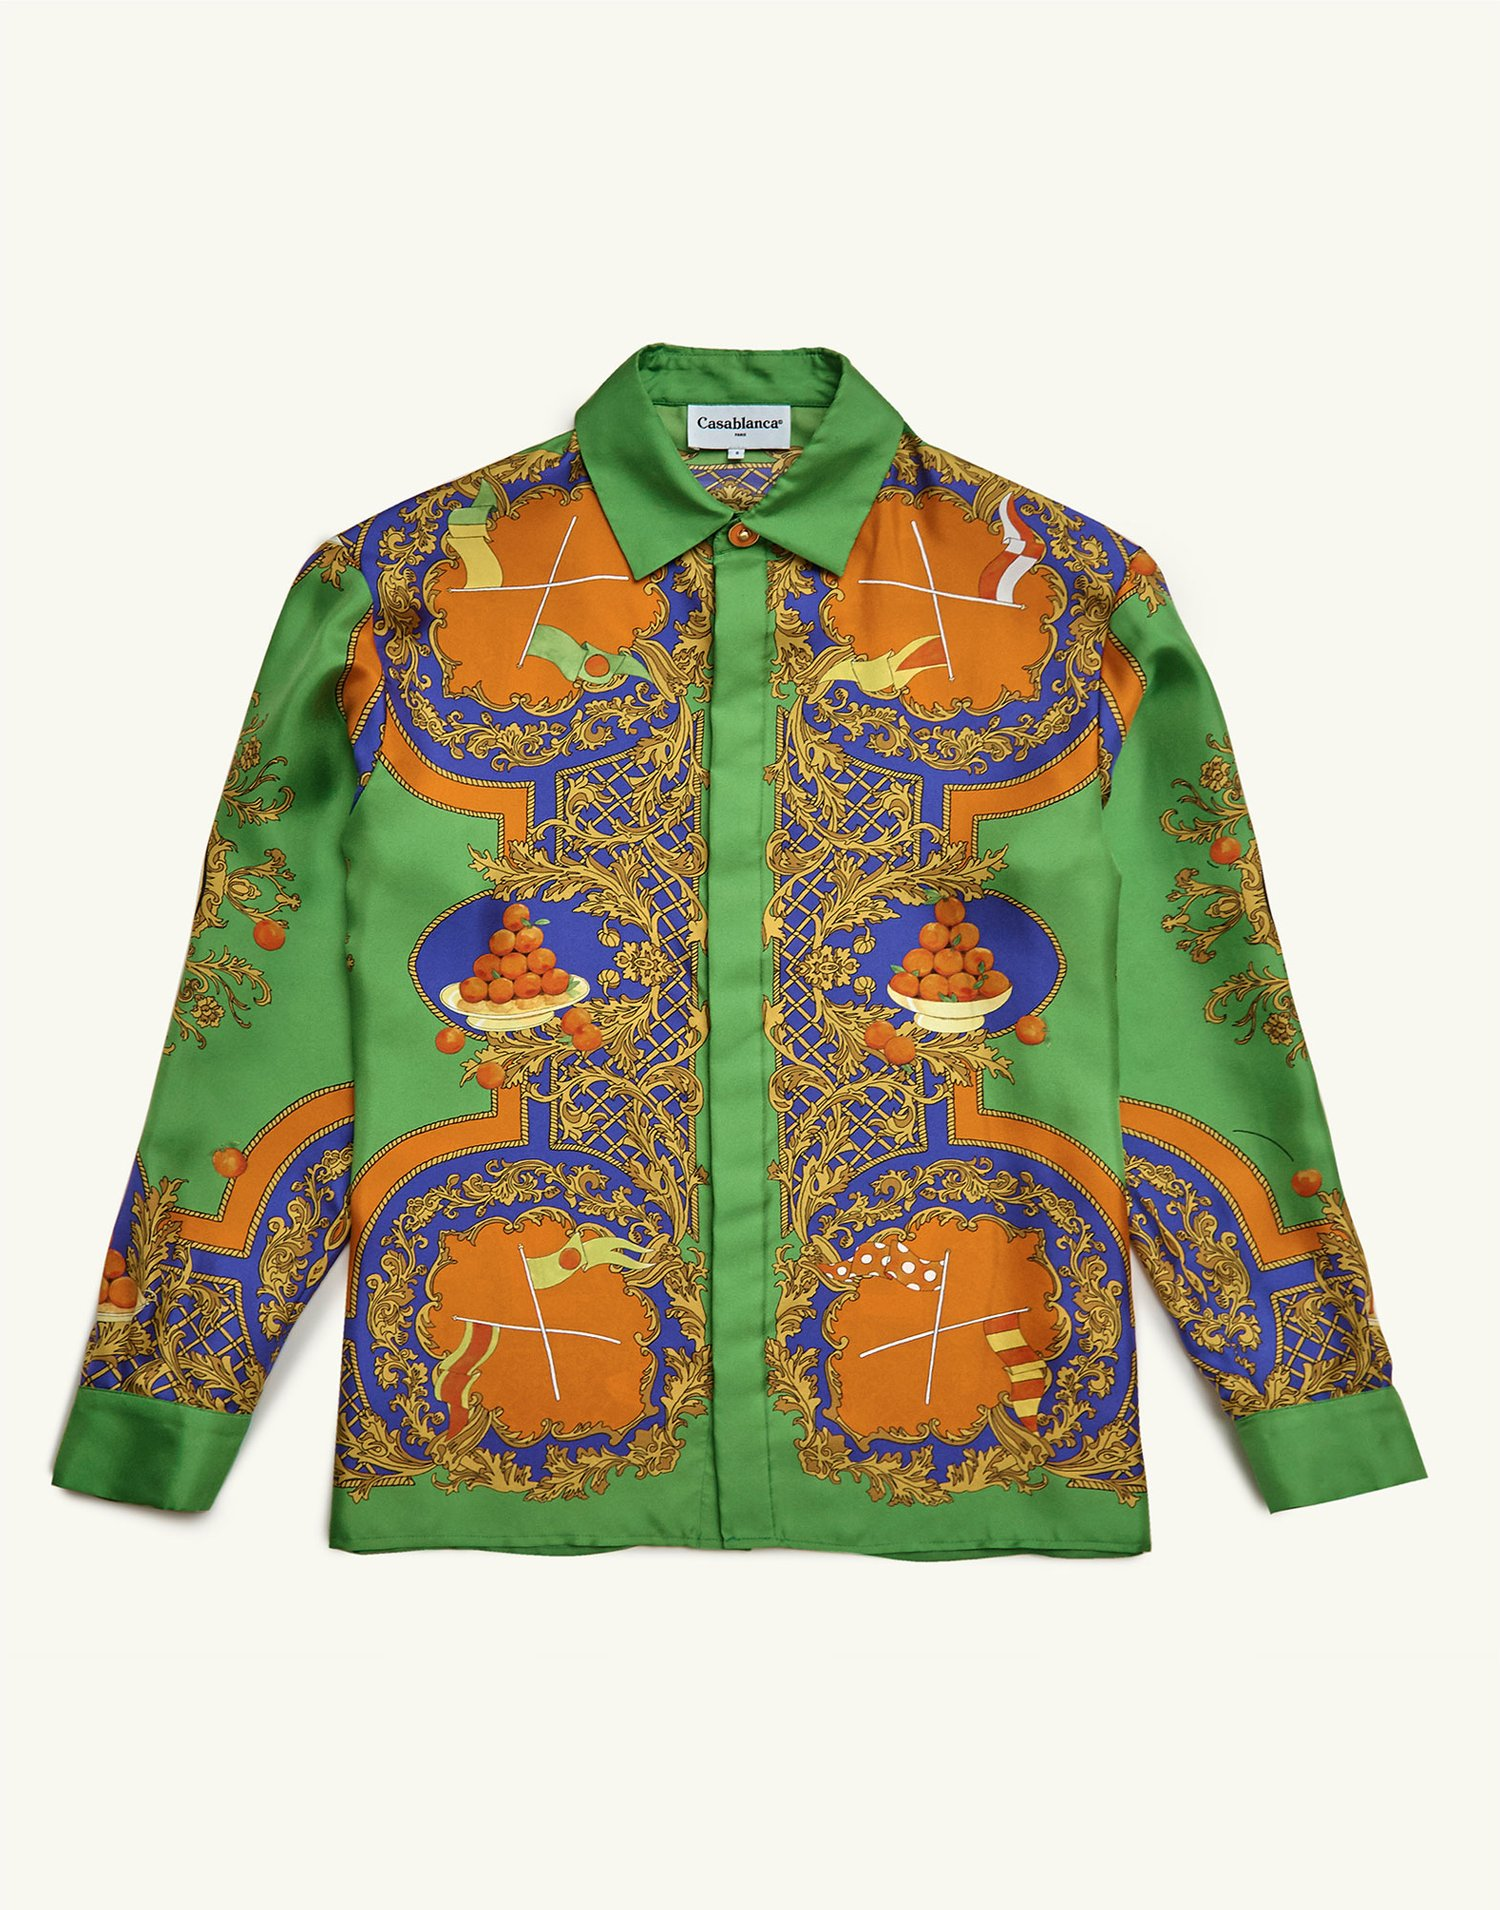 Casablanca shirt - €600 - This would look incredible with white speedos at Club Tropicana where drinks are free